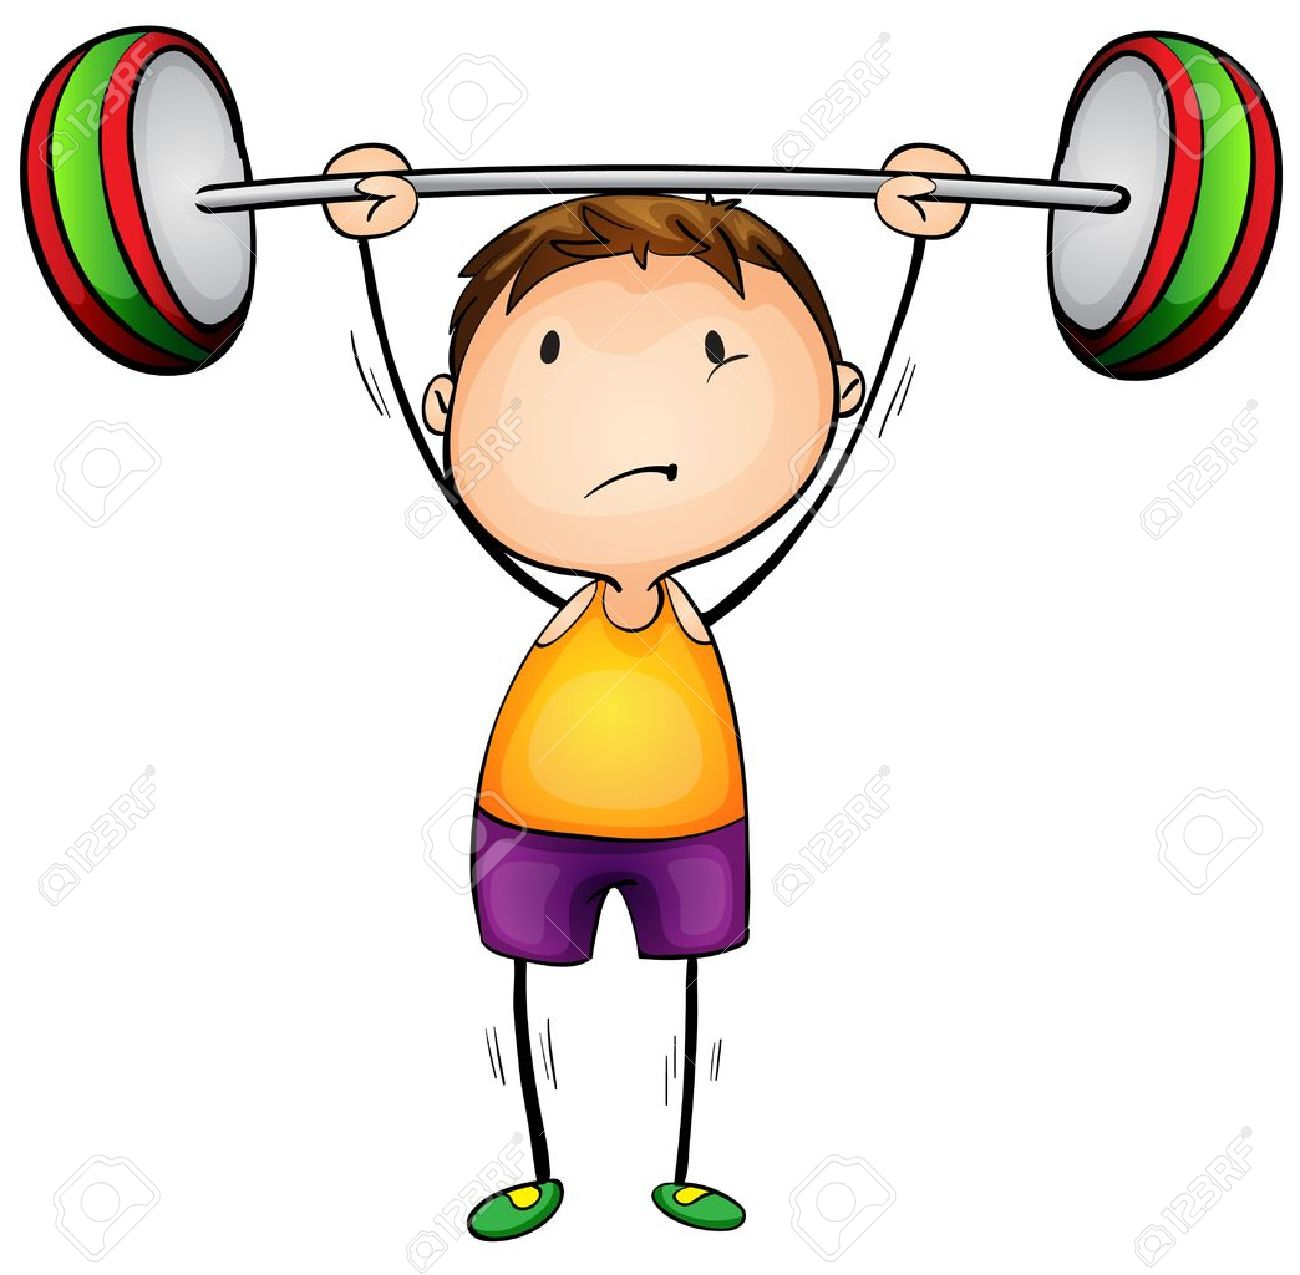 Lifting Weights Clipart.